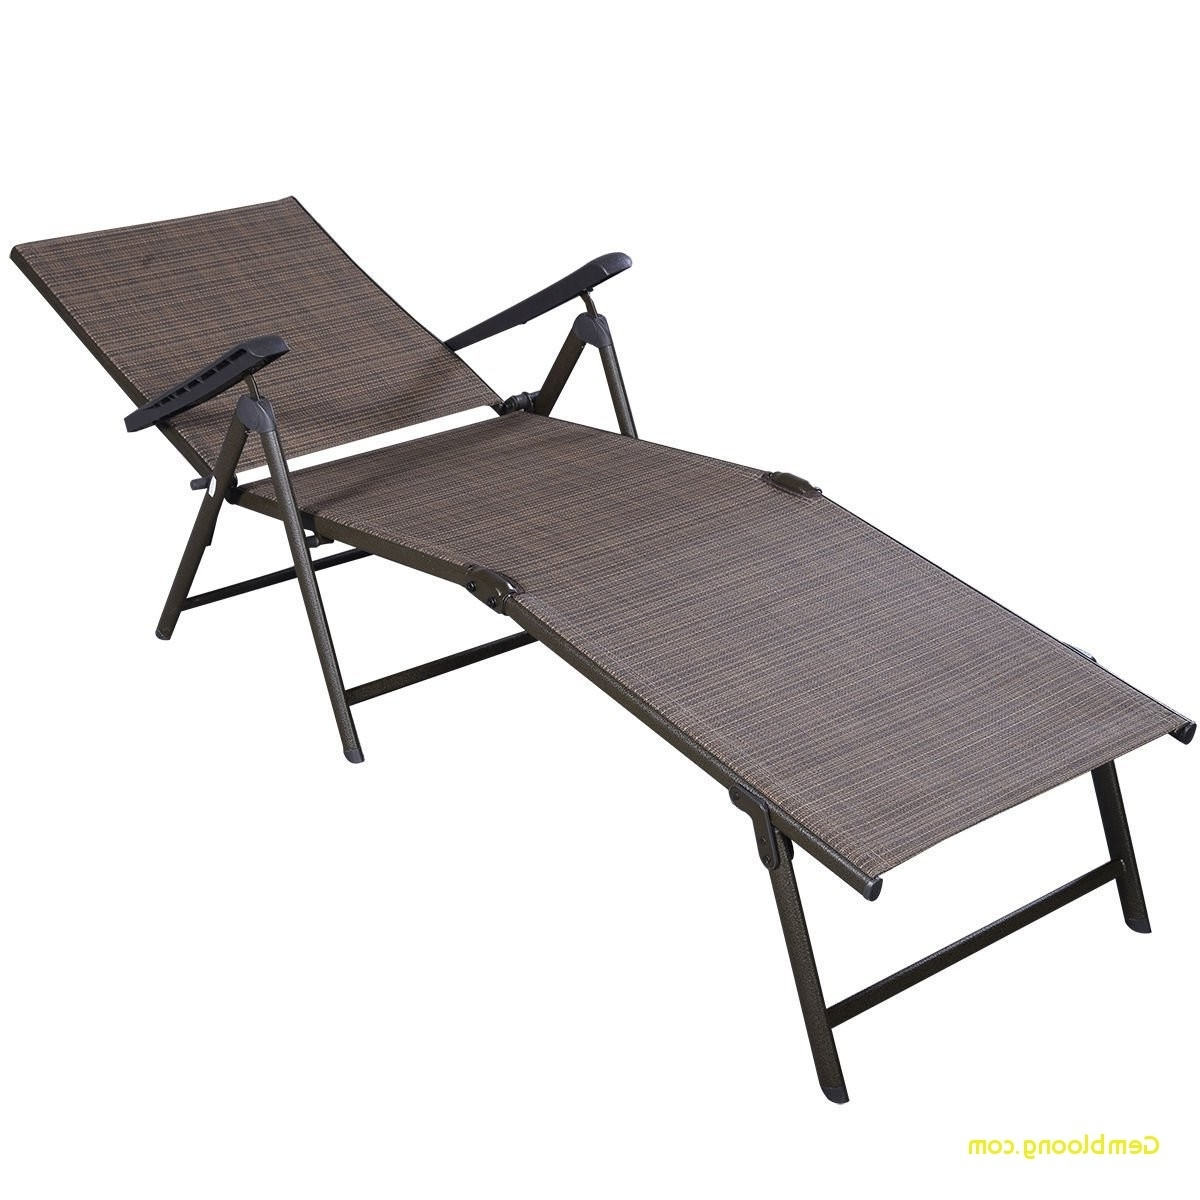 Well Known Adjustable Pool Chaise Lounge Chair Recliners Intended For Chaise Patio Awesome Amazon Giantex Adjustable Pool Chaise Lounge (View 14 of 15)